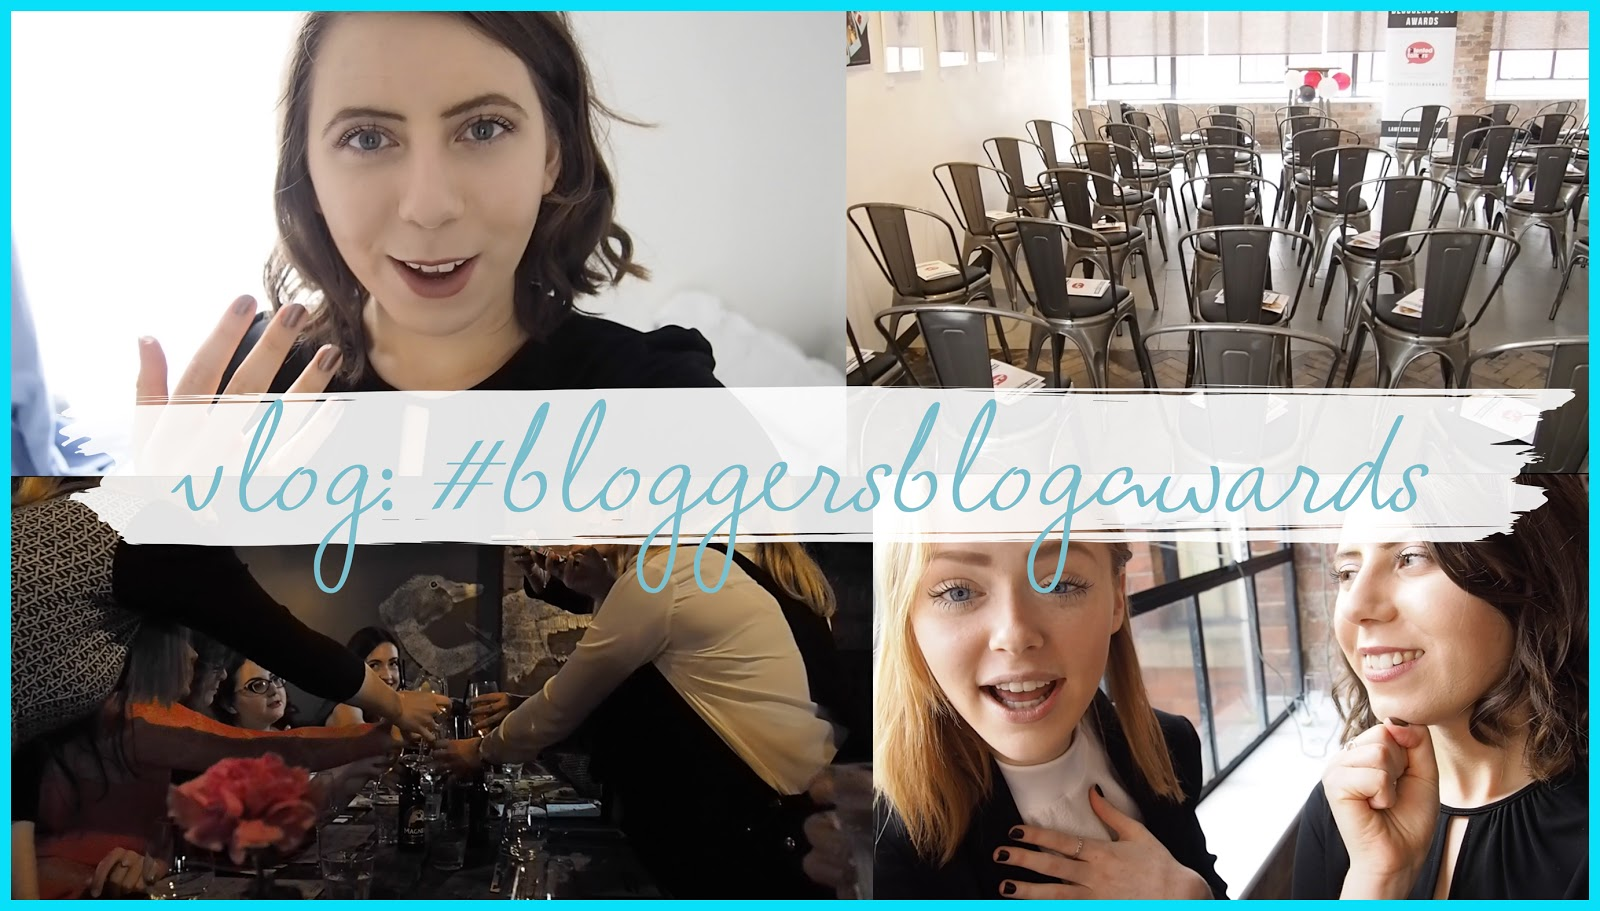 THE VIDEO: #BLOGGERSBLOGAWARDS VLOG